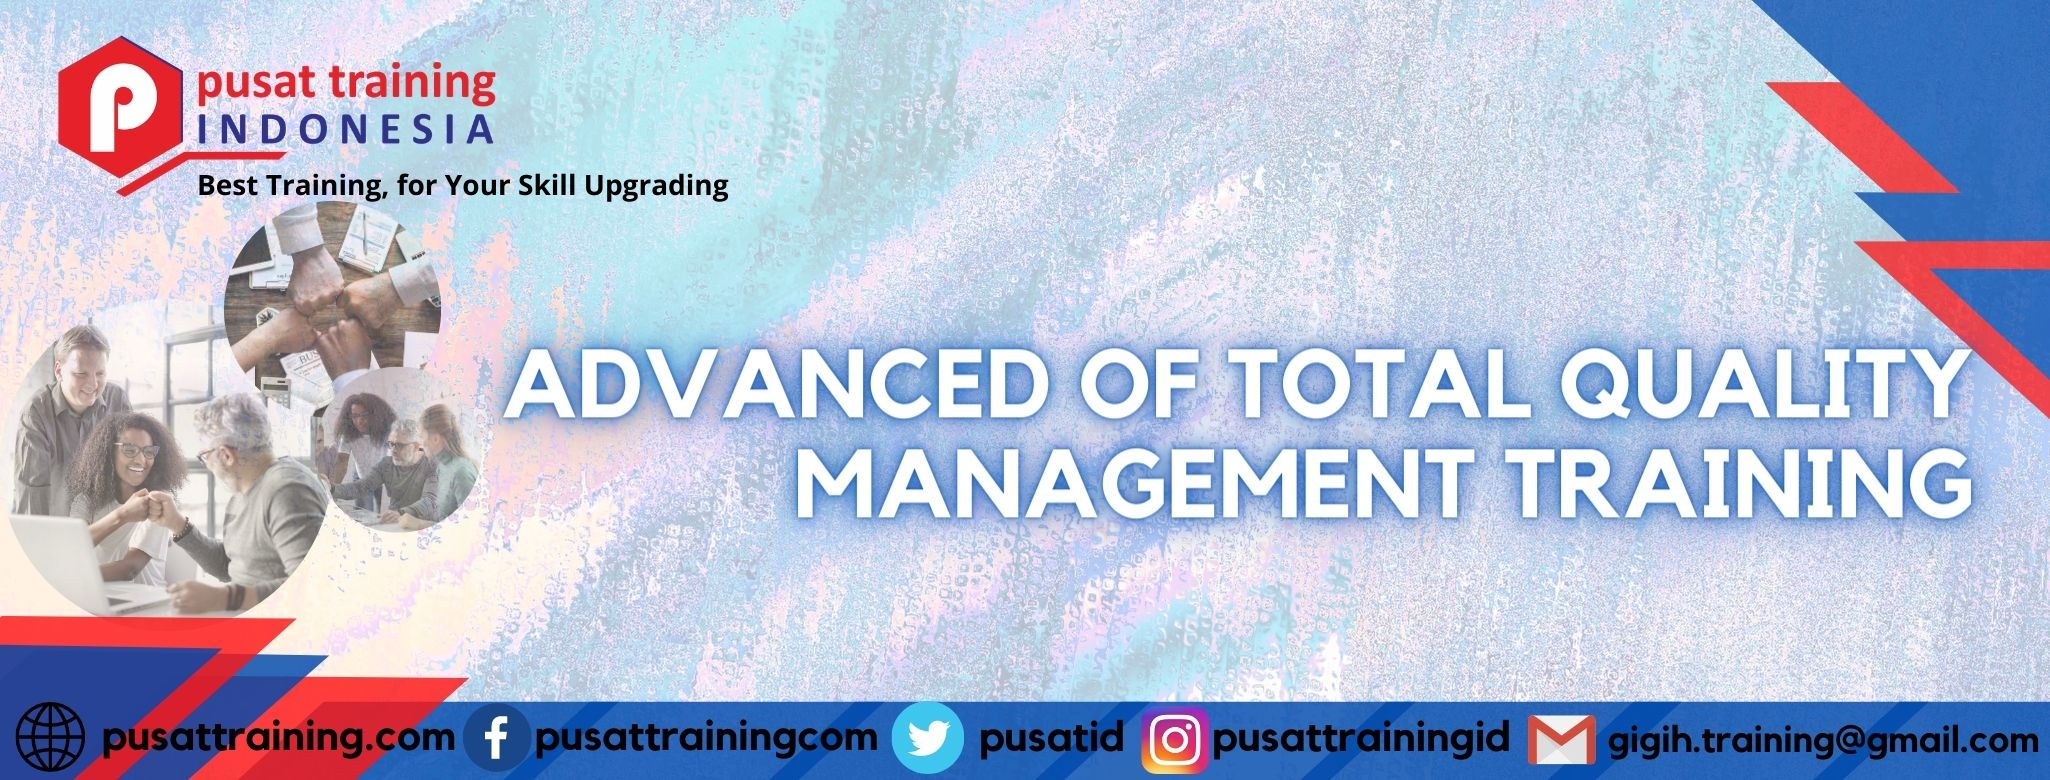 advance-of-total-quality-management-training